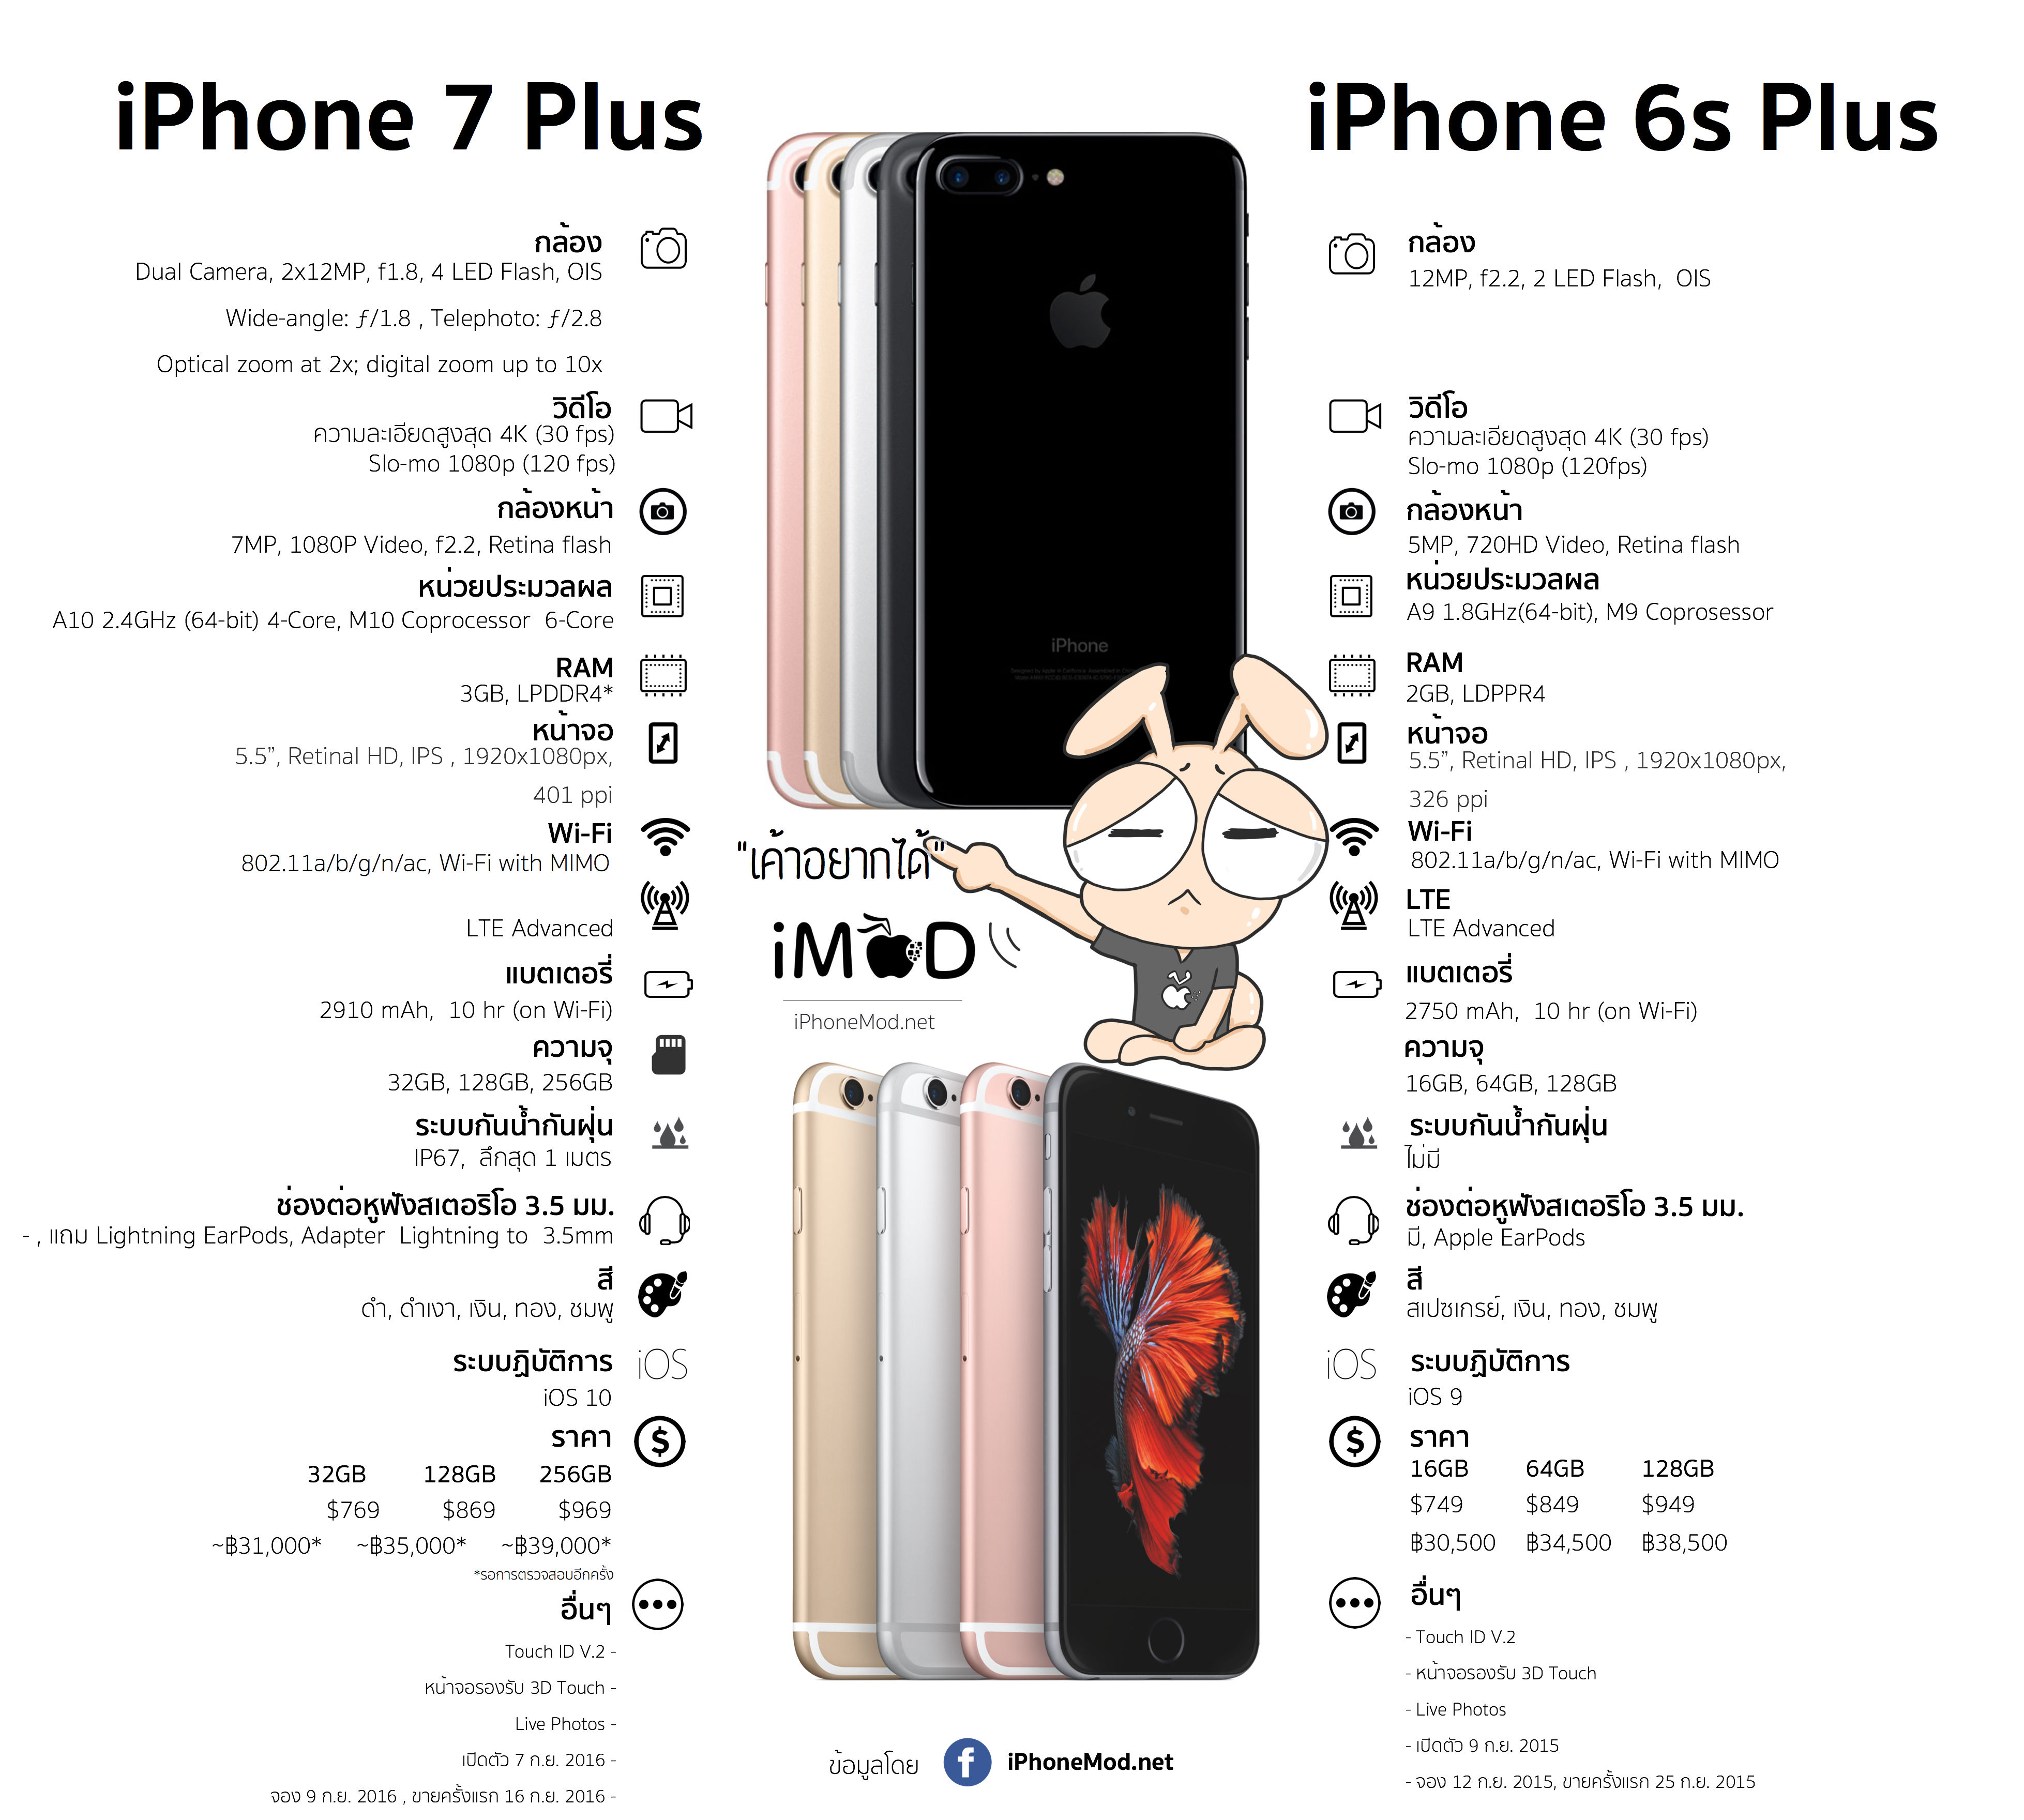 iPhone 7 Plus vs iPhone 6s Plus small